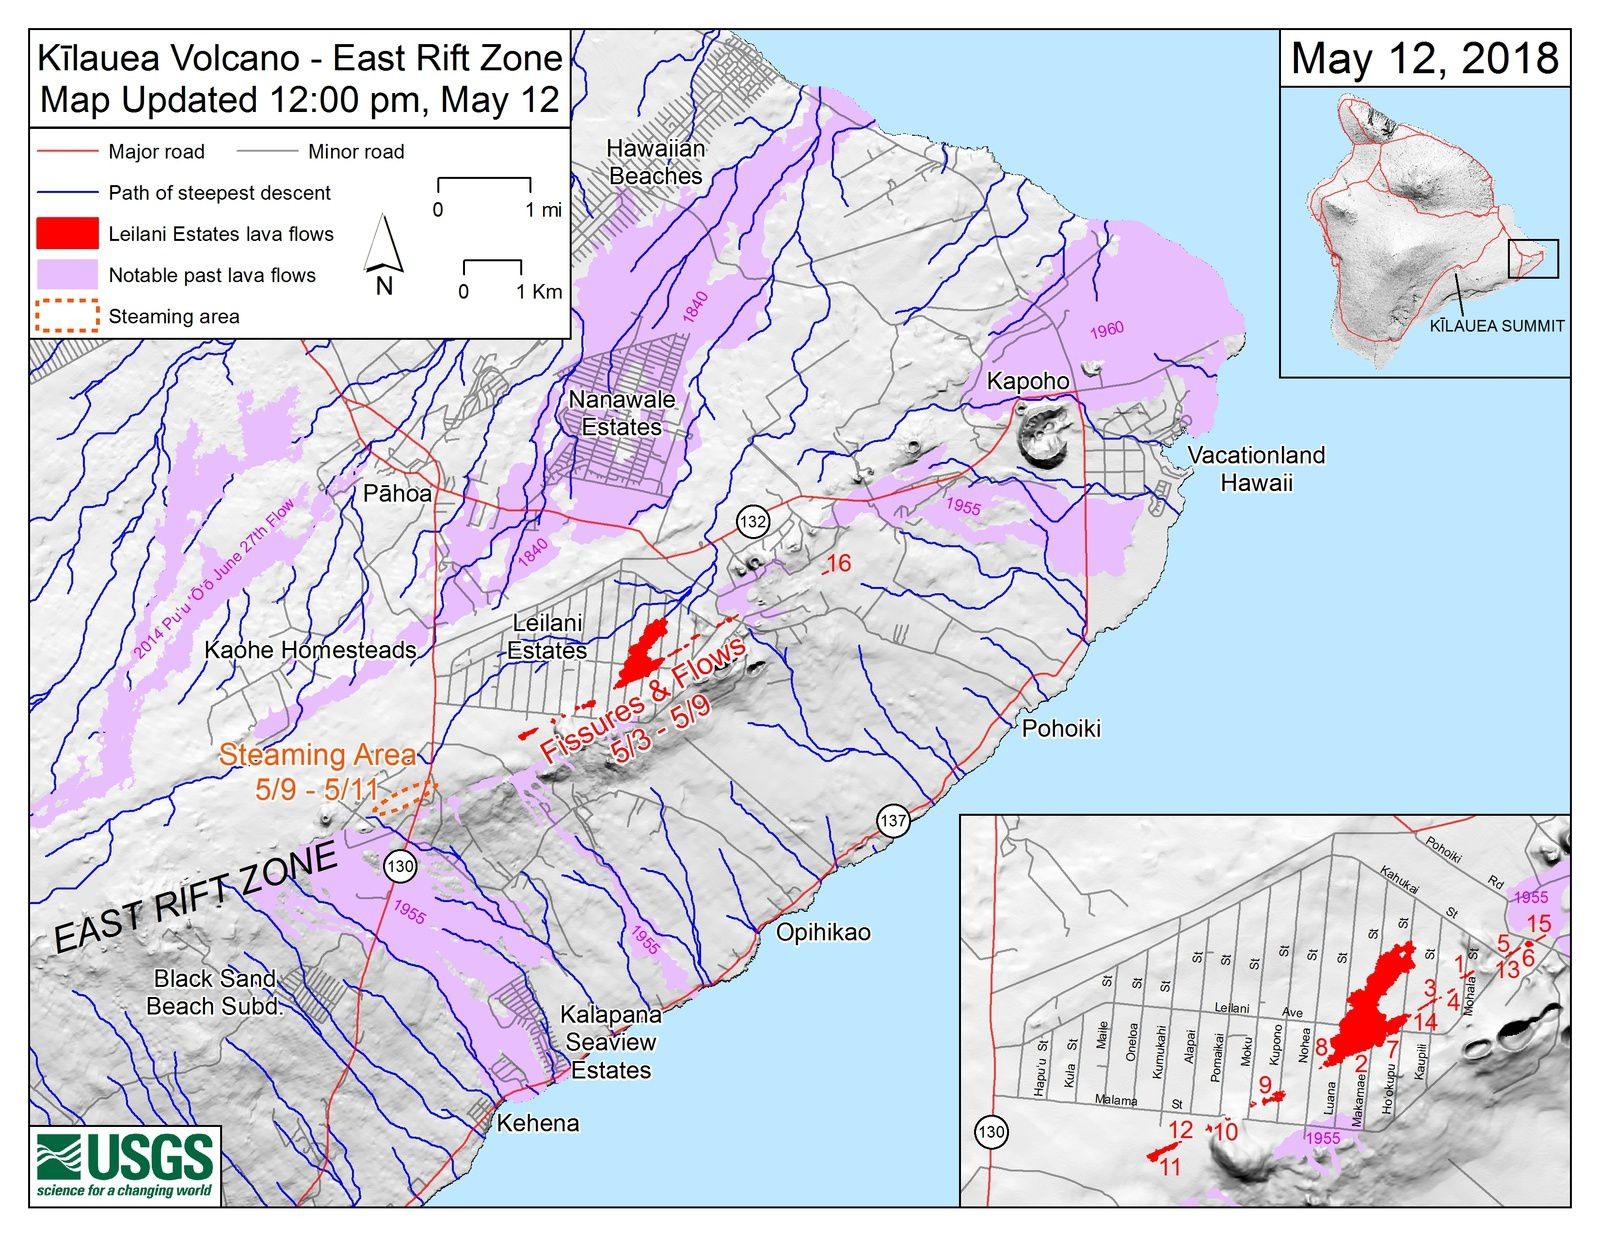 Main map shows the location of fissure 16, as well as earlier fissures, lava flows, and steaming areas, as of 12:00 p.m. HST, May 12. - USGS